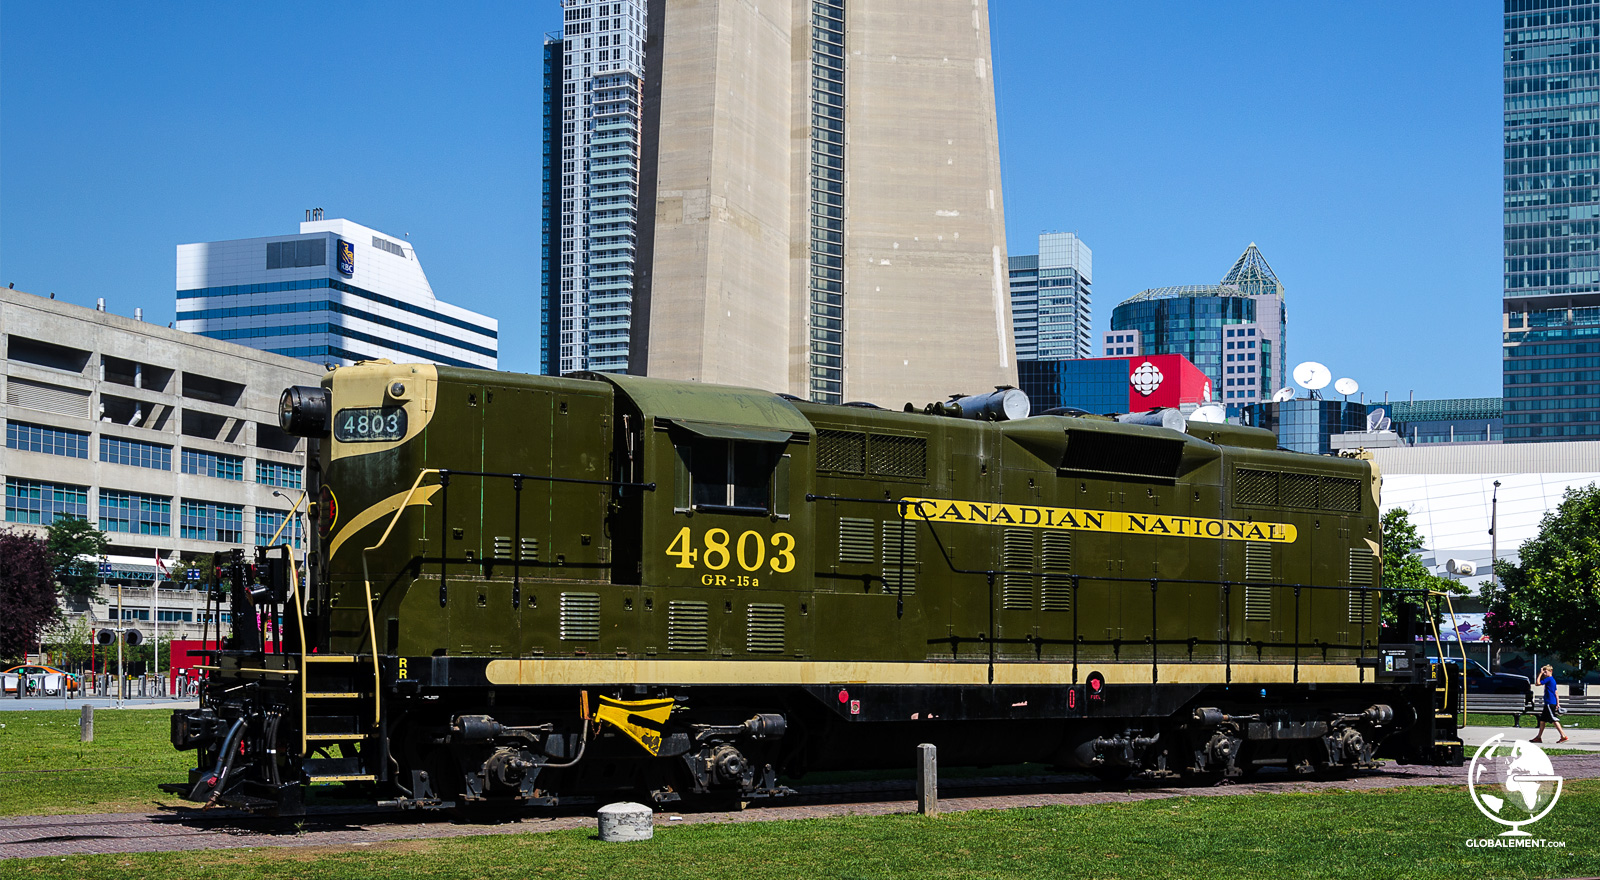 old train canadian railway toronto